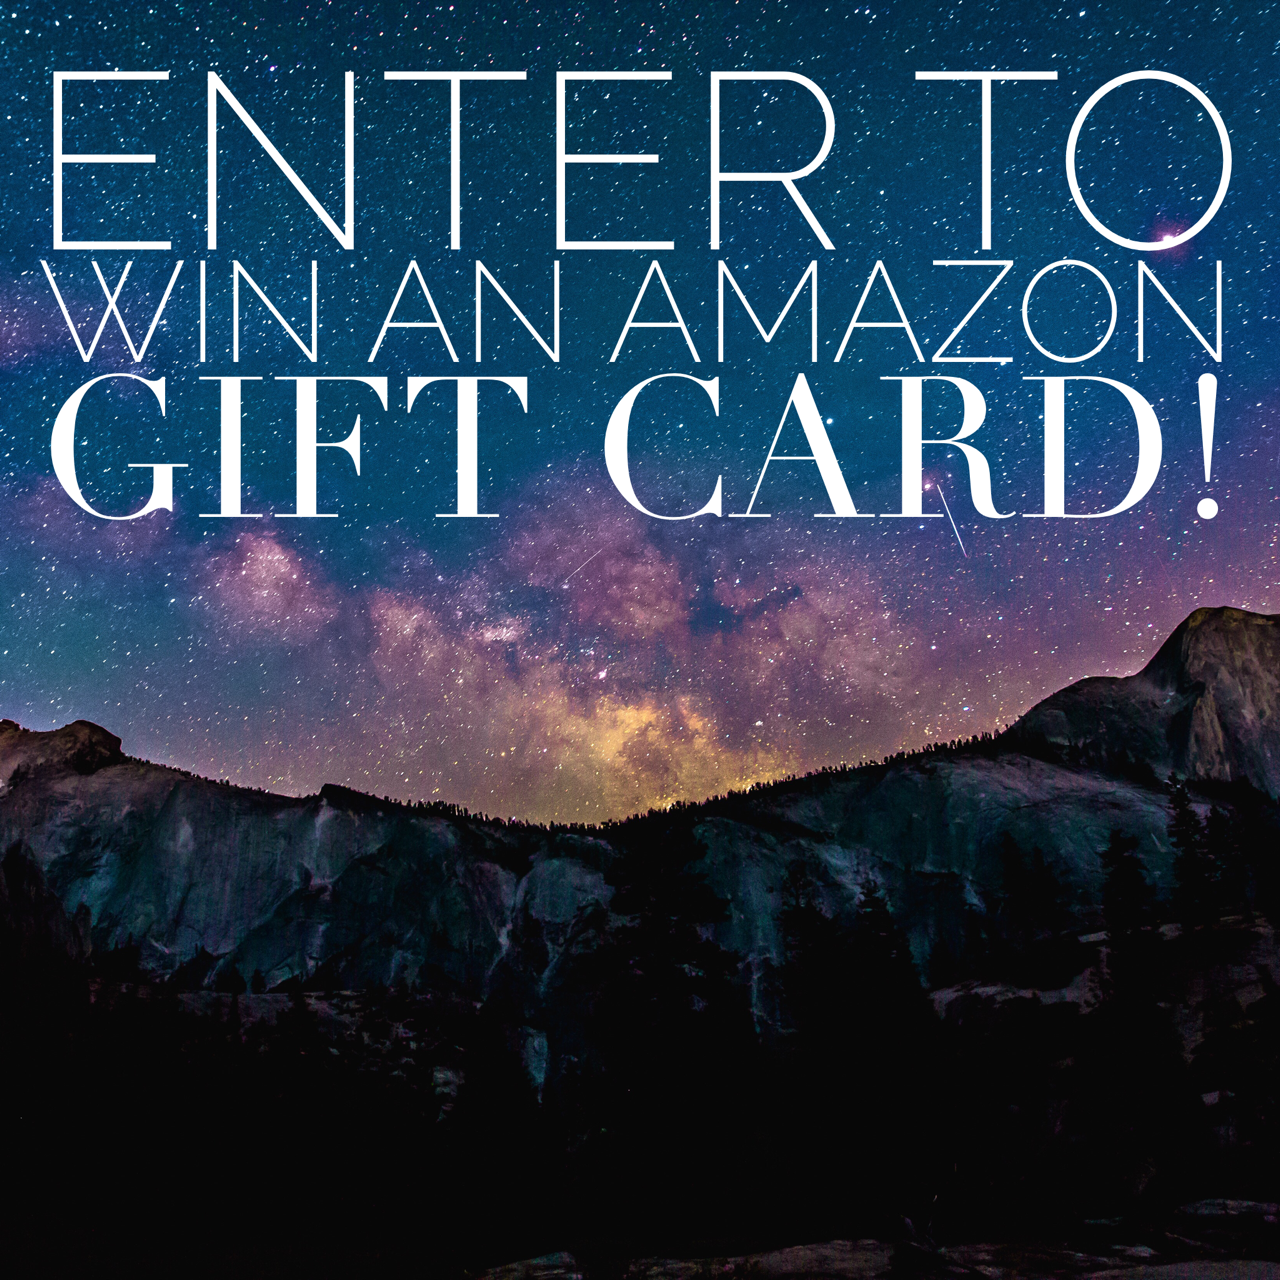 Enter to Win a $300 Amazon Gift Card